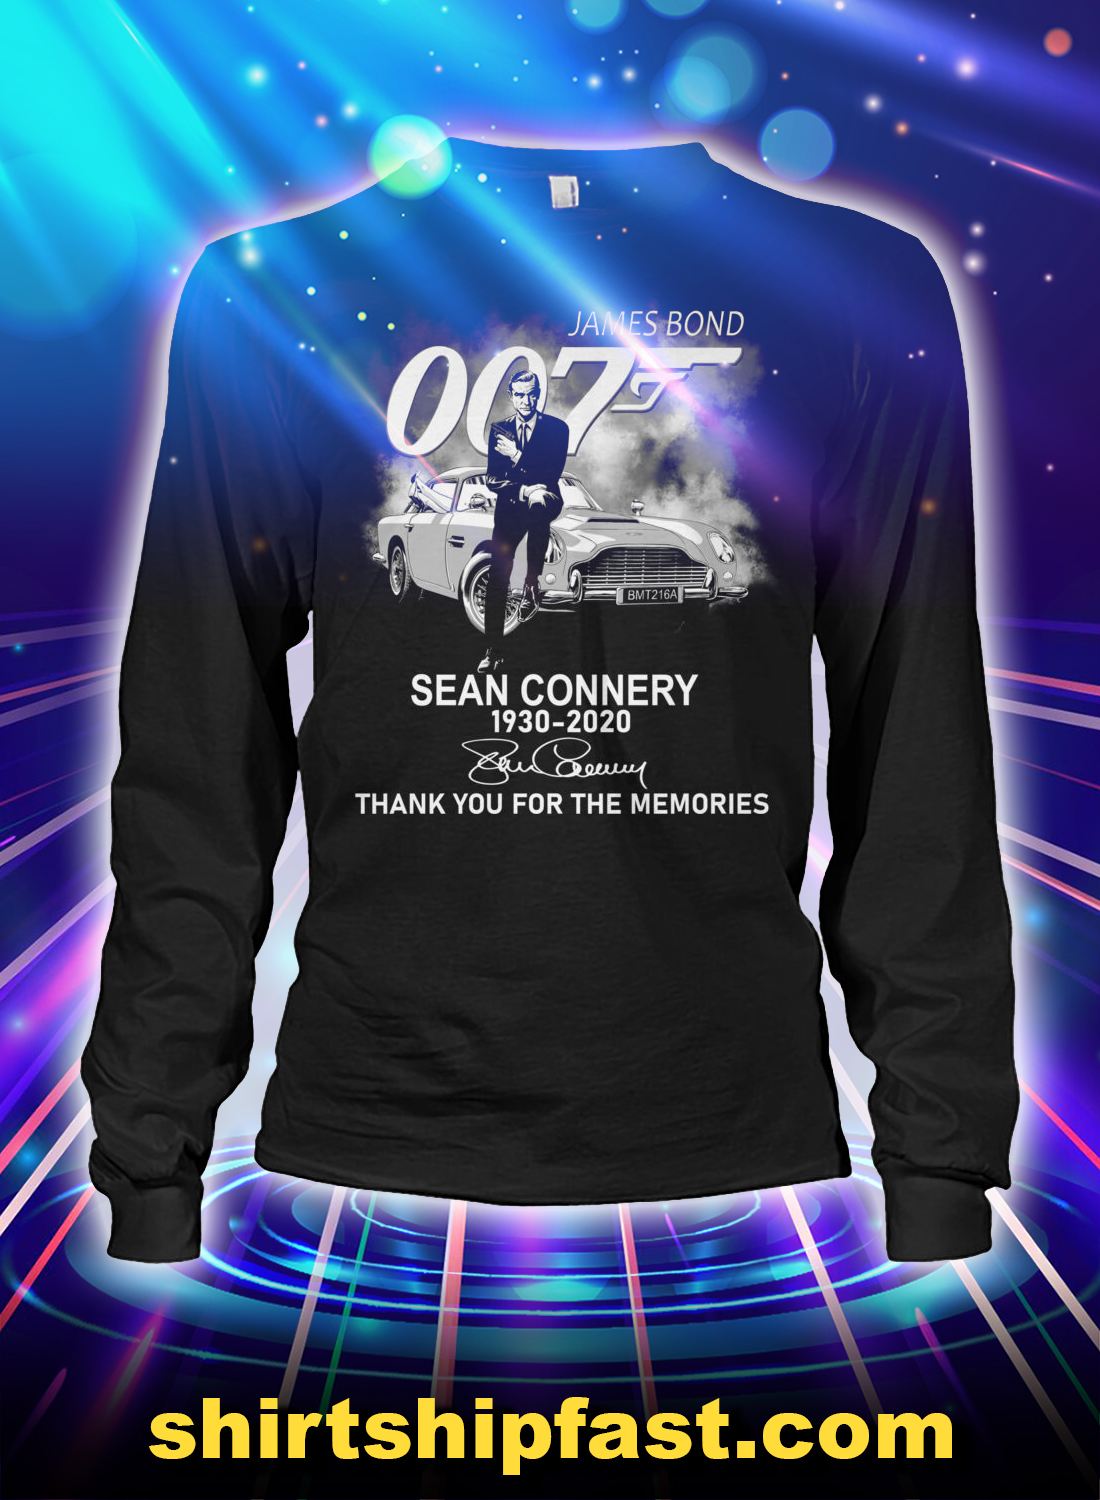 James Bond 007 sean connery thank you for the memories long sleeve tee